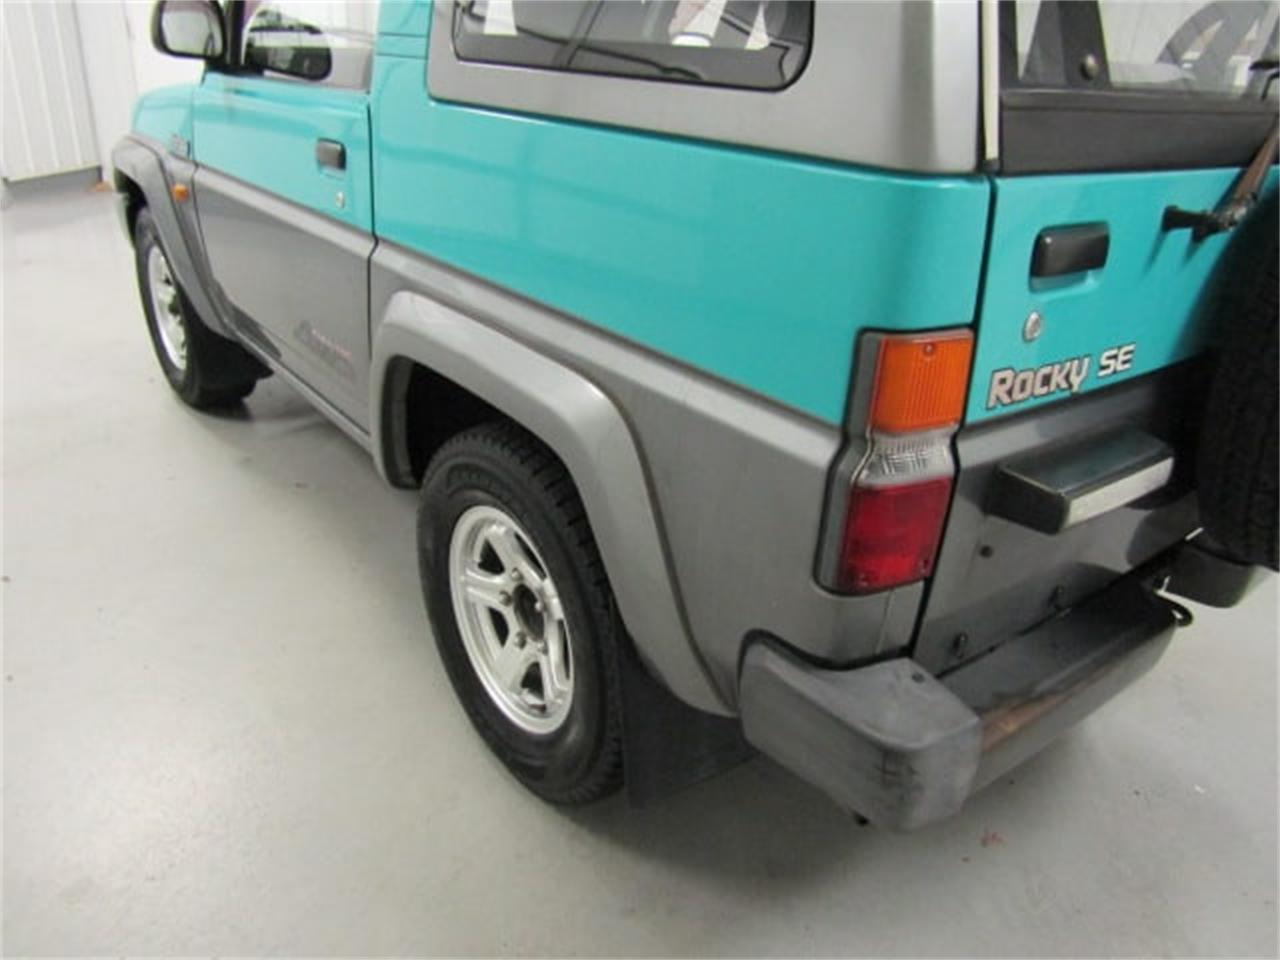 Large Picture of '91 Daihatsu Rocky located in Christiansburg Virginia - $8,989.00 - Q4MR